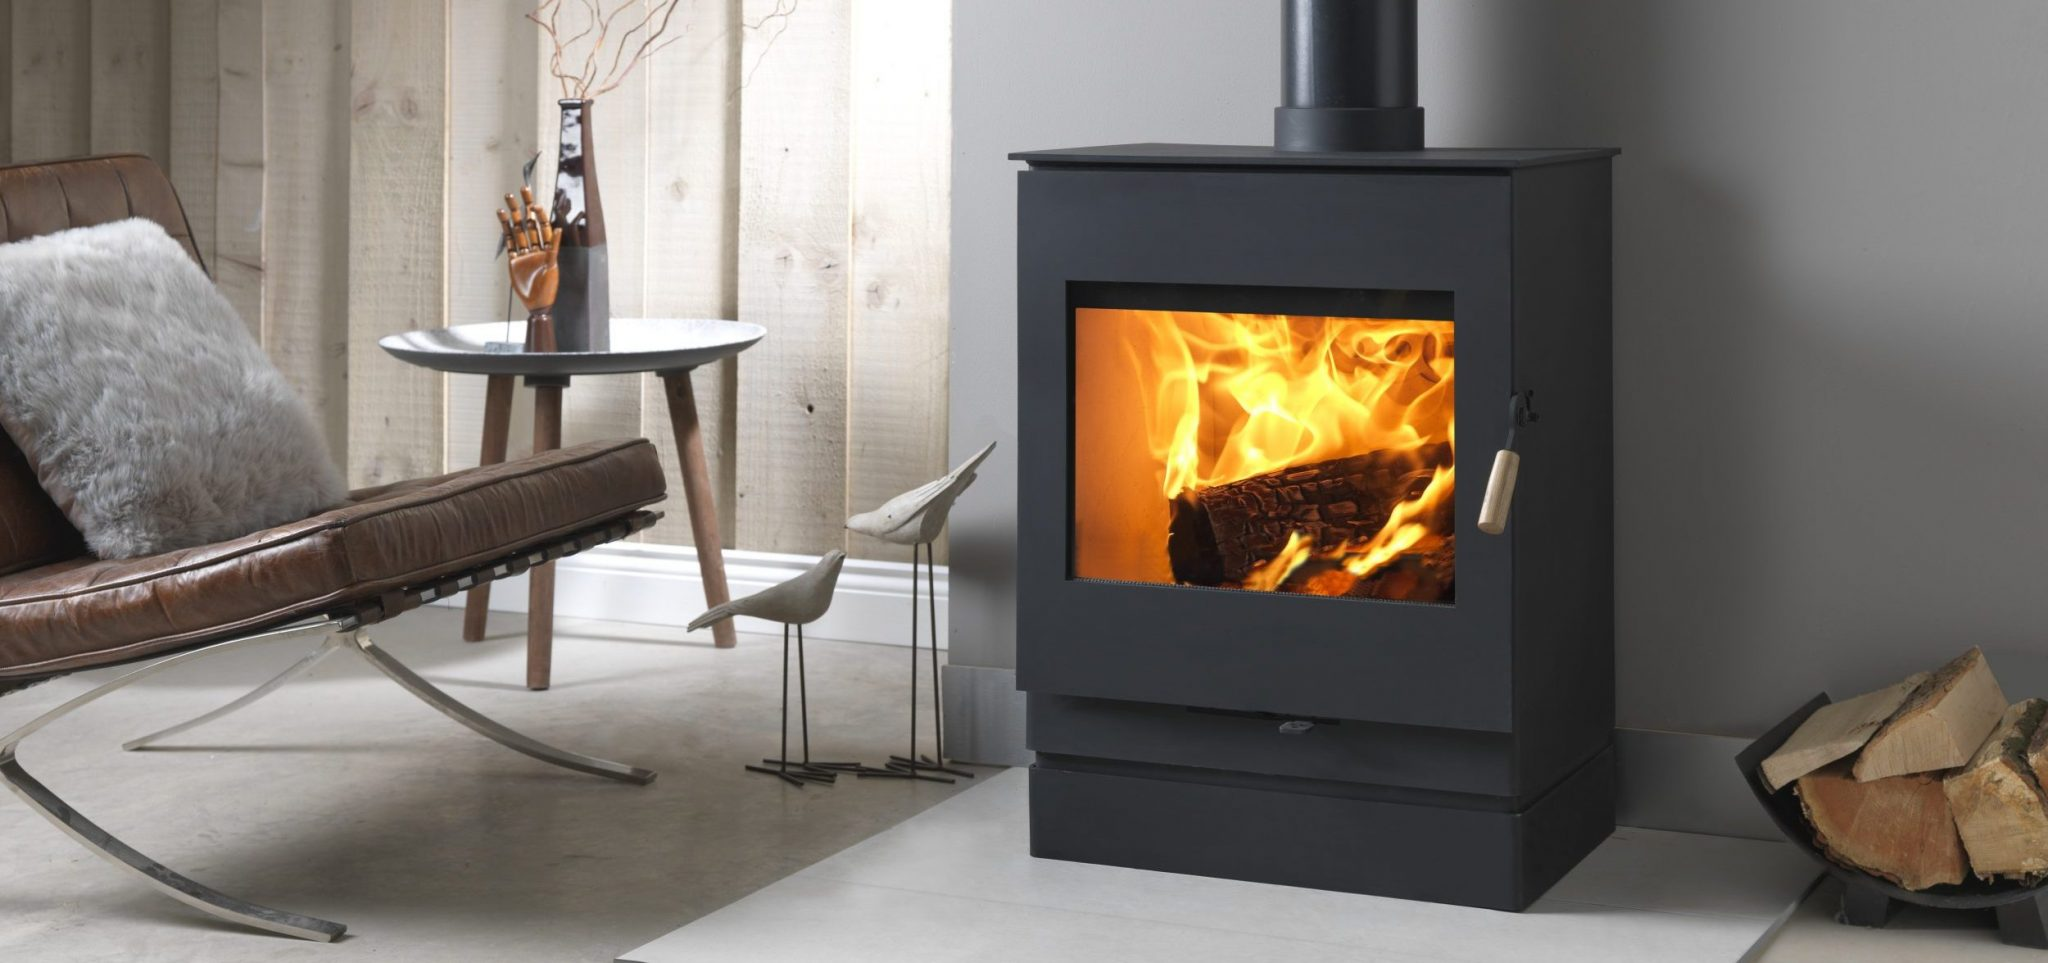 Chesney Fireplace Images Chesney Fireplace Mantels How To